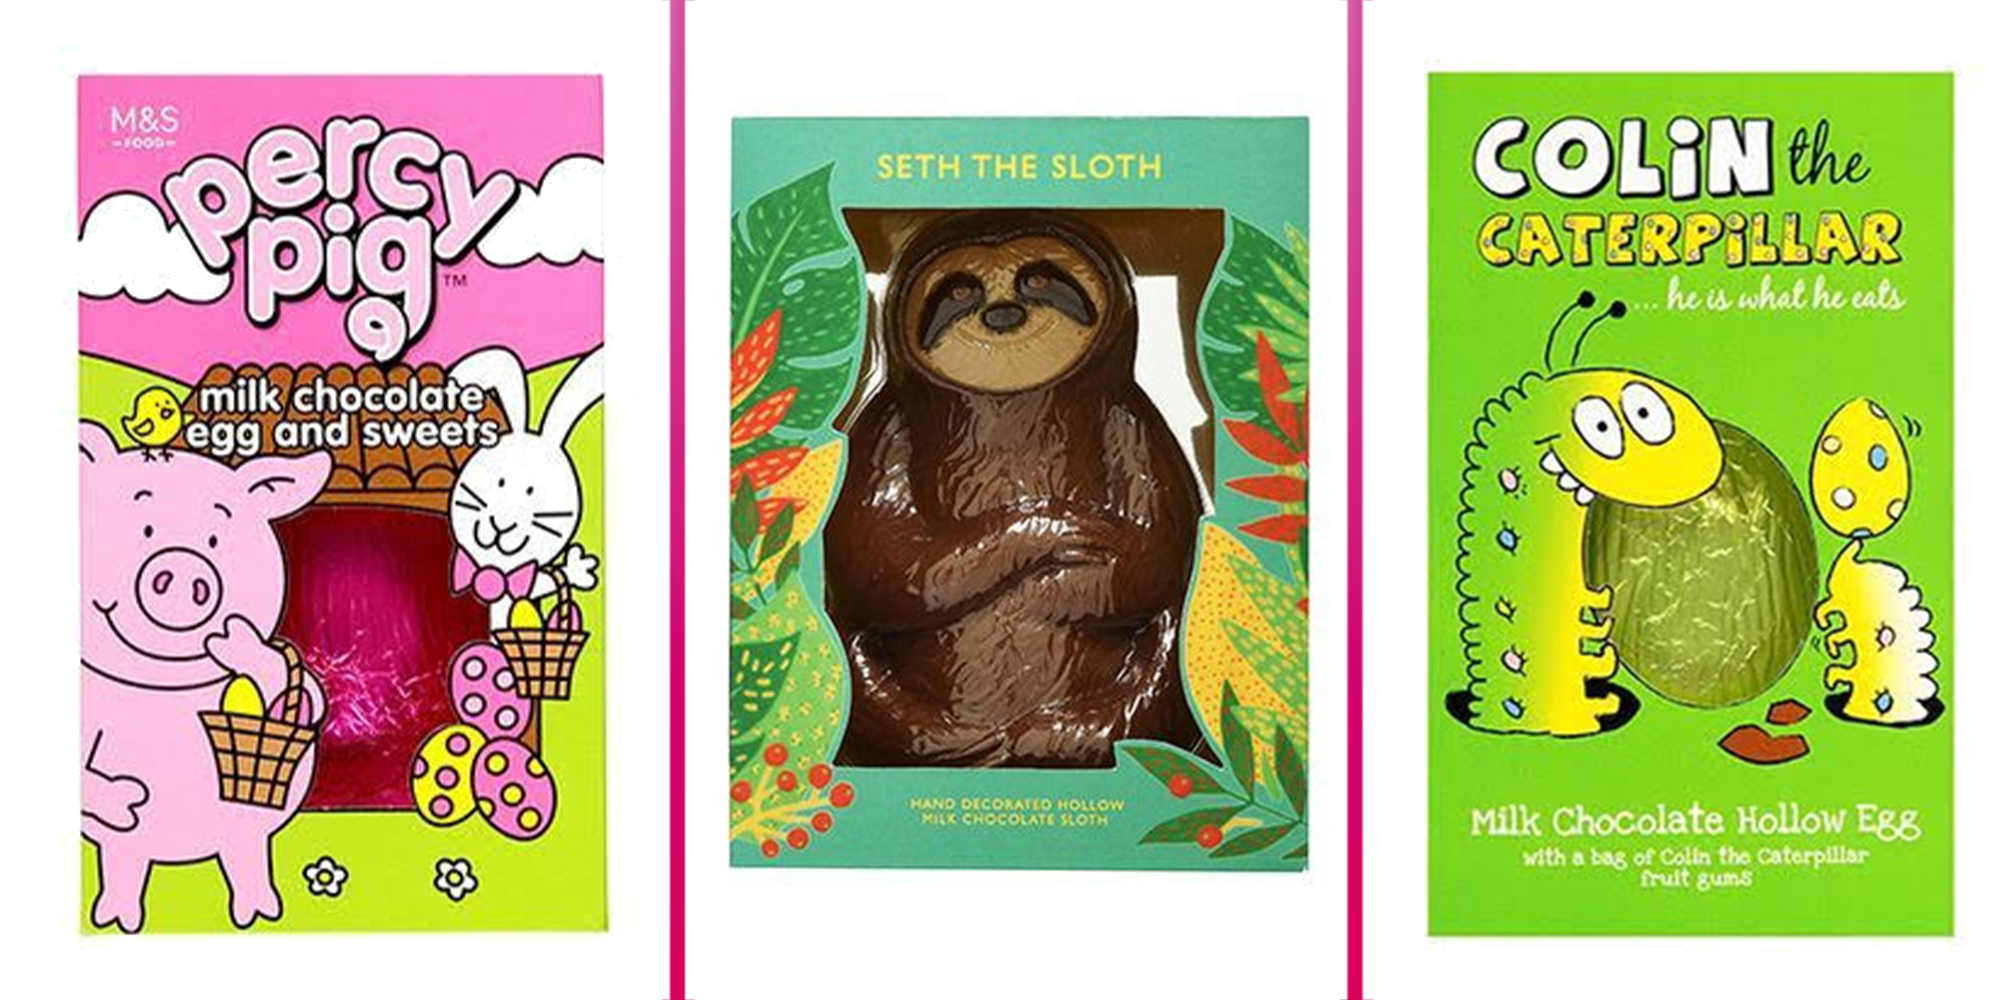 Cracking Easter egg offers announced by Marks & Spencer and Aldi